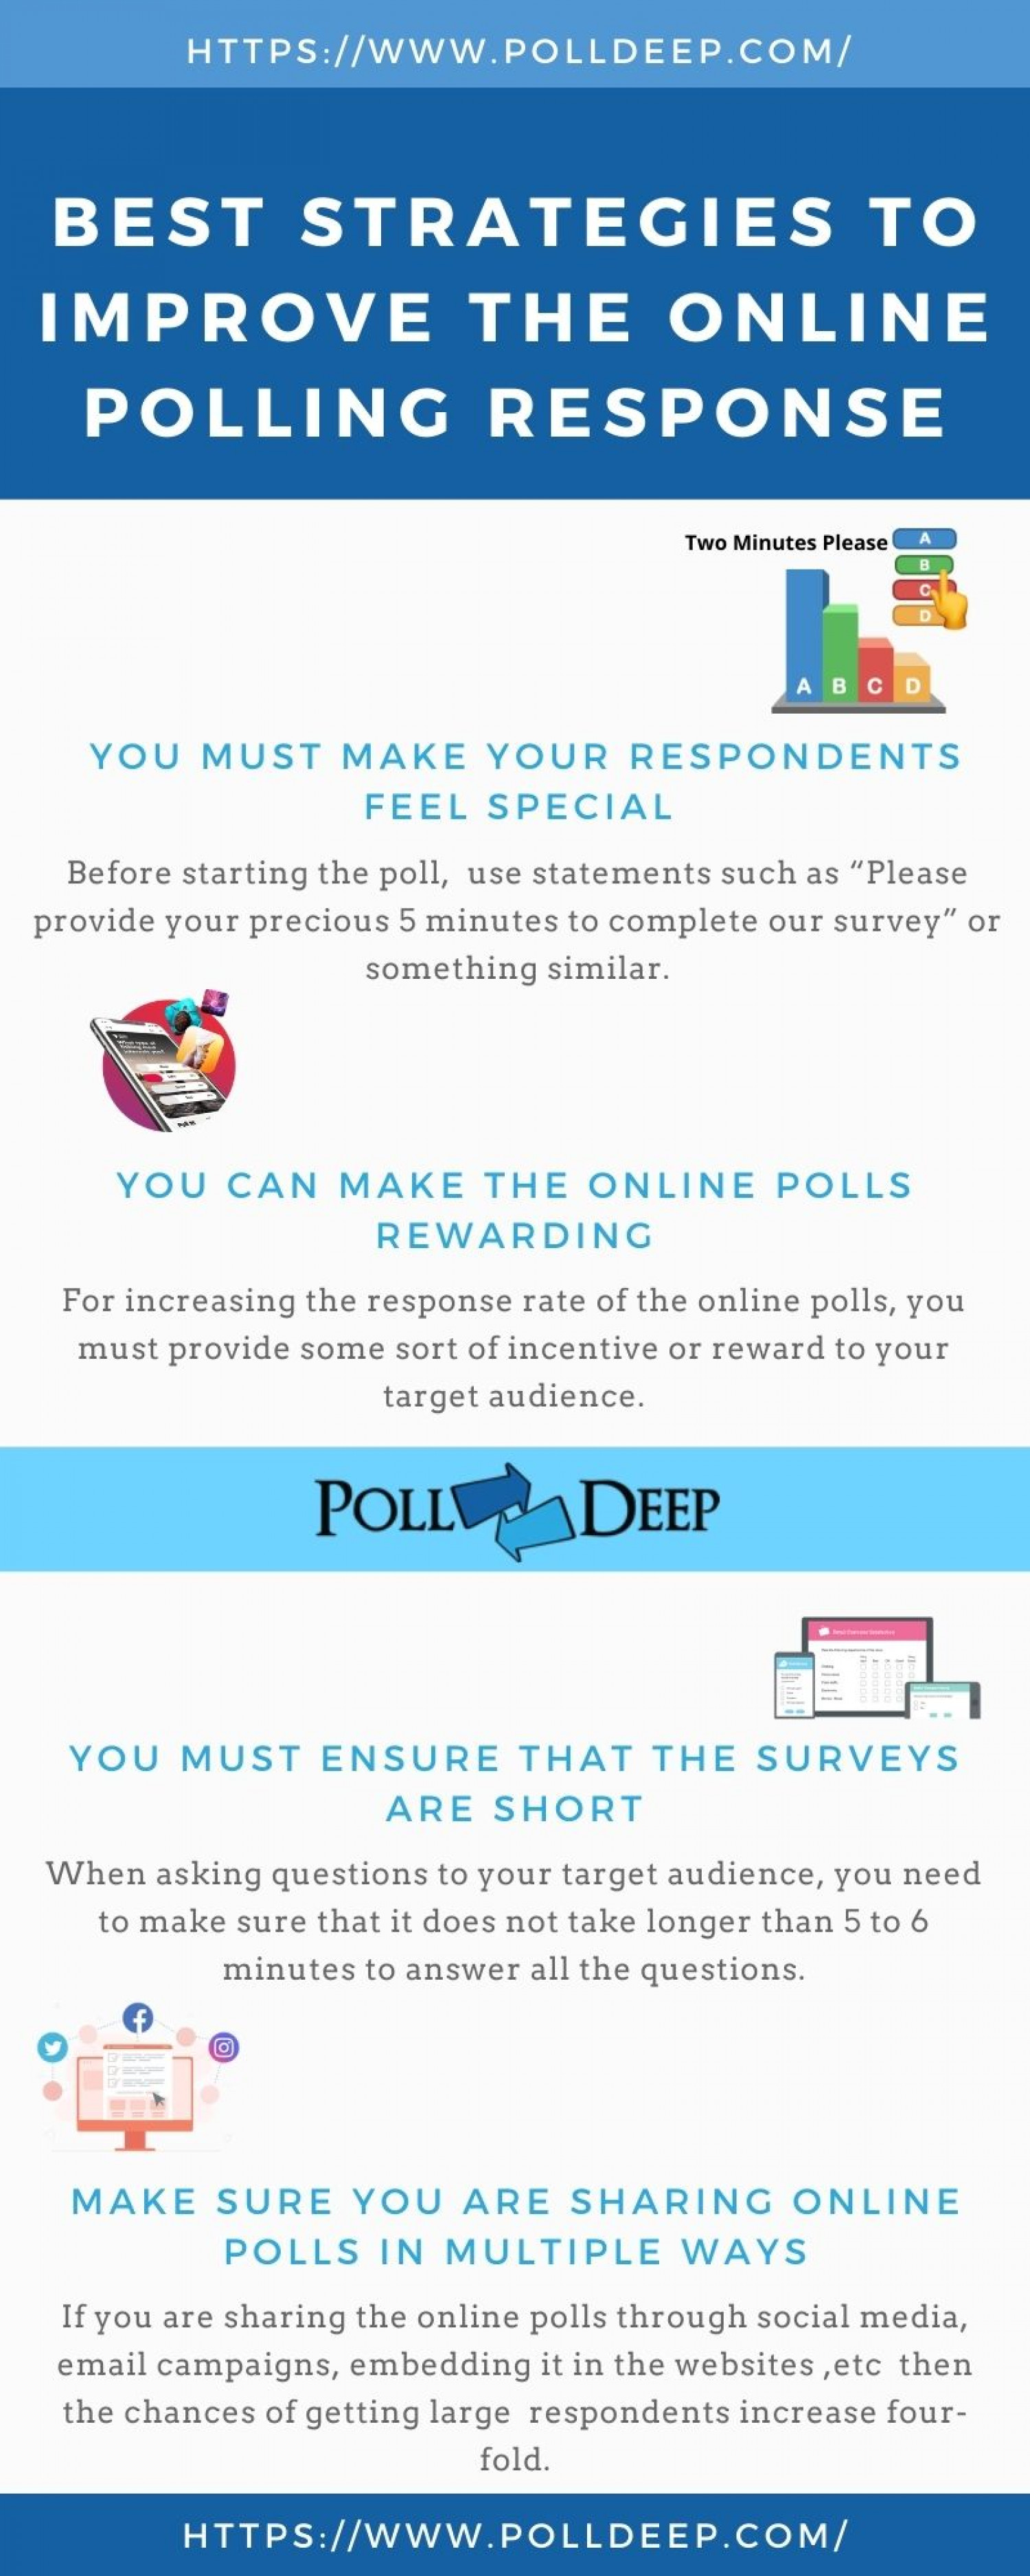 Best Strategies To Improve The Online Polling Response Infographic